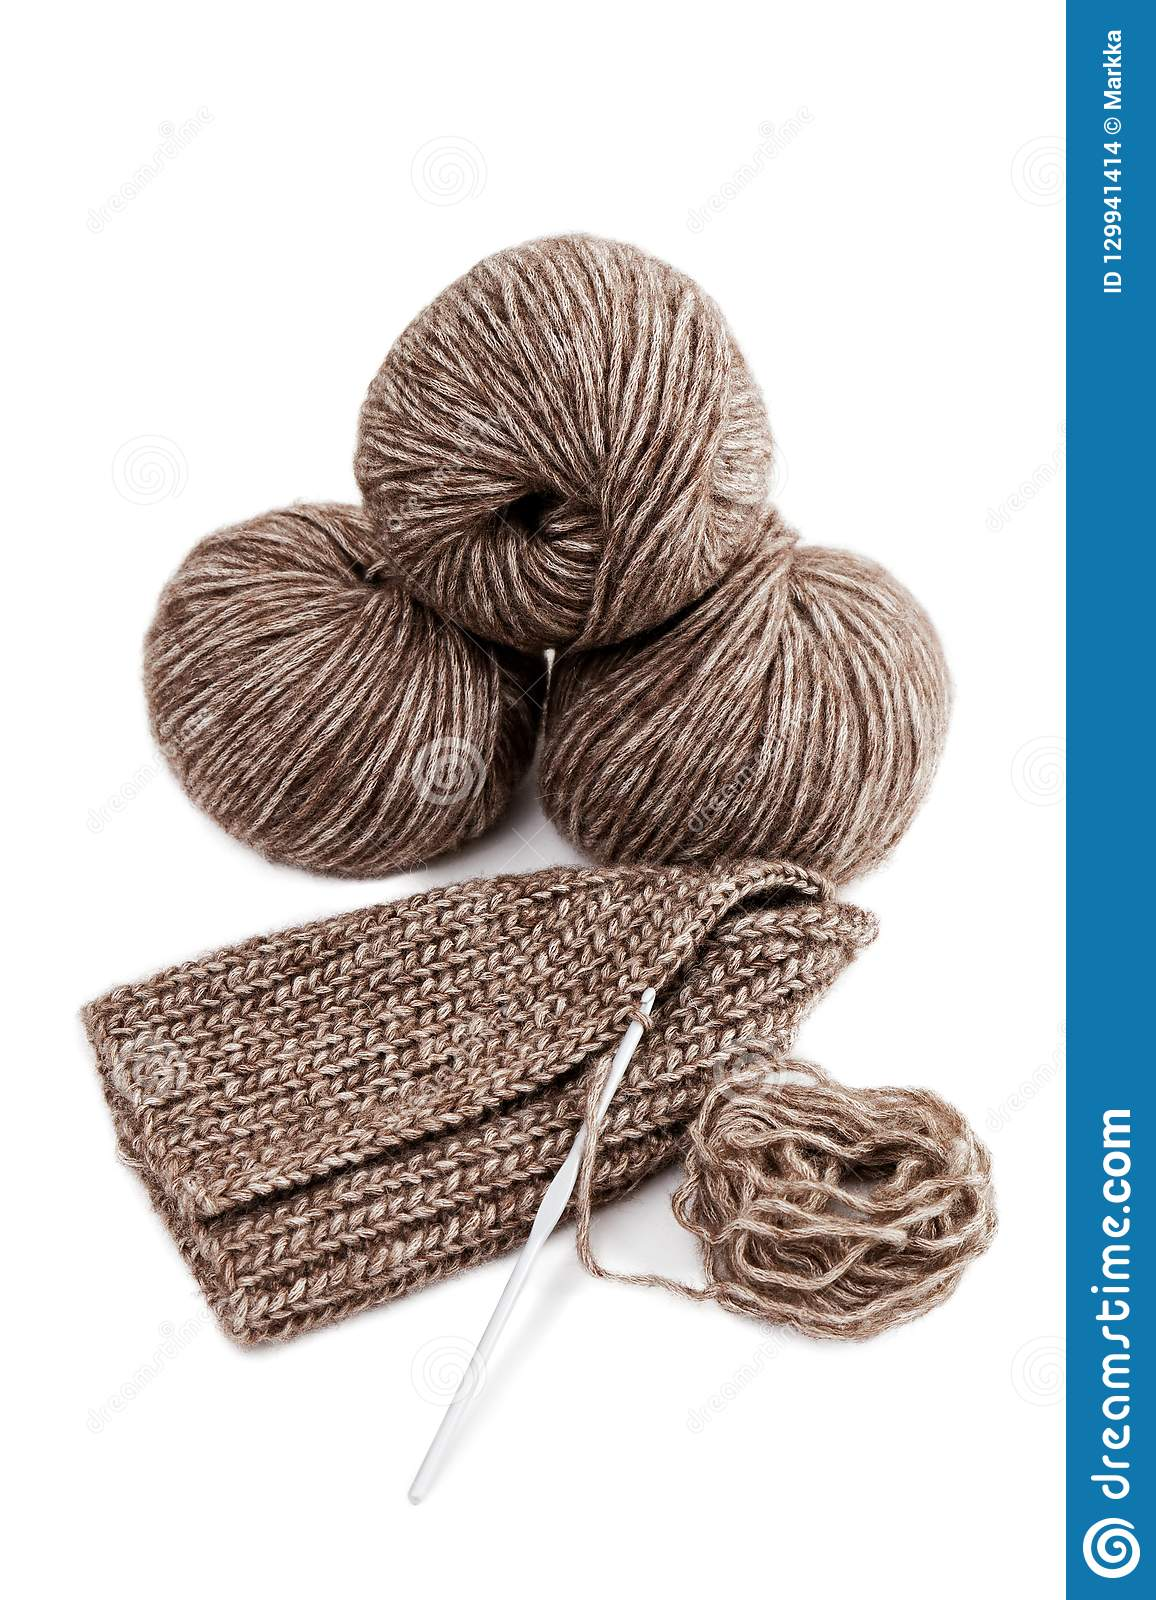 Balls Of Yarn And Knitted Handicrafts Stock Photo Image Of